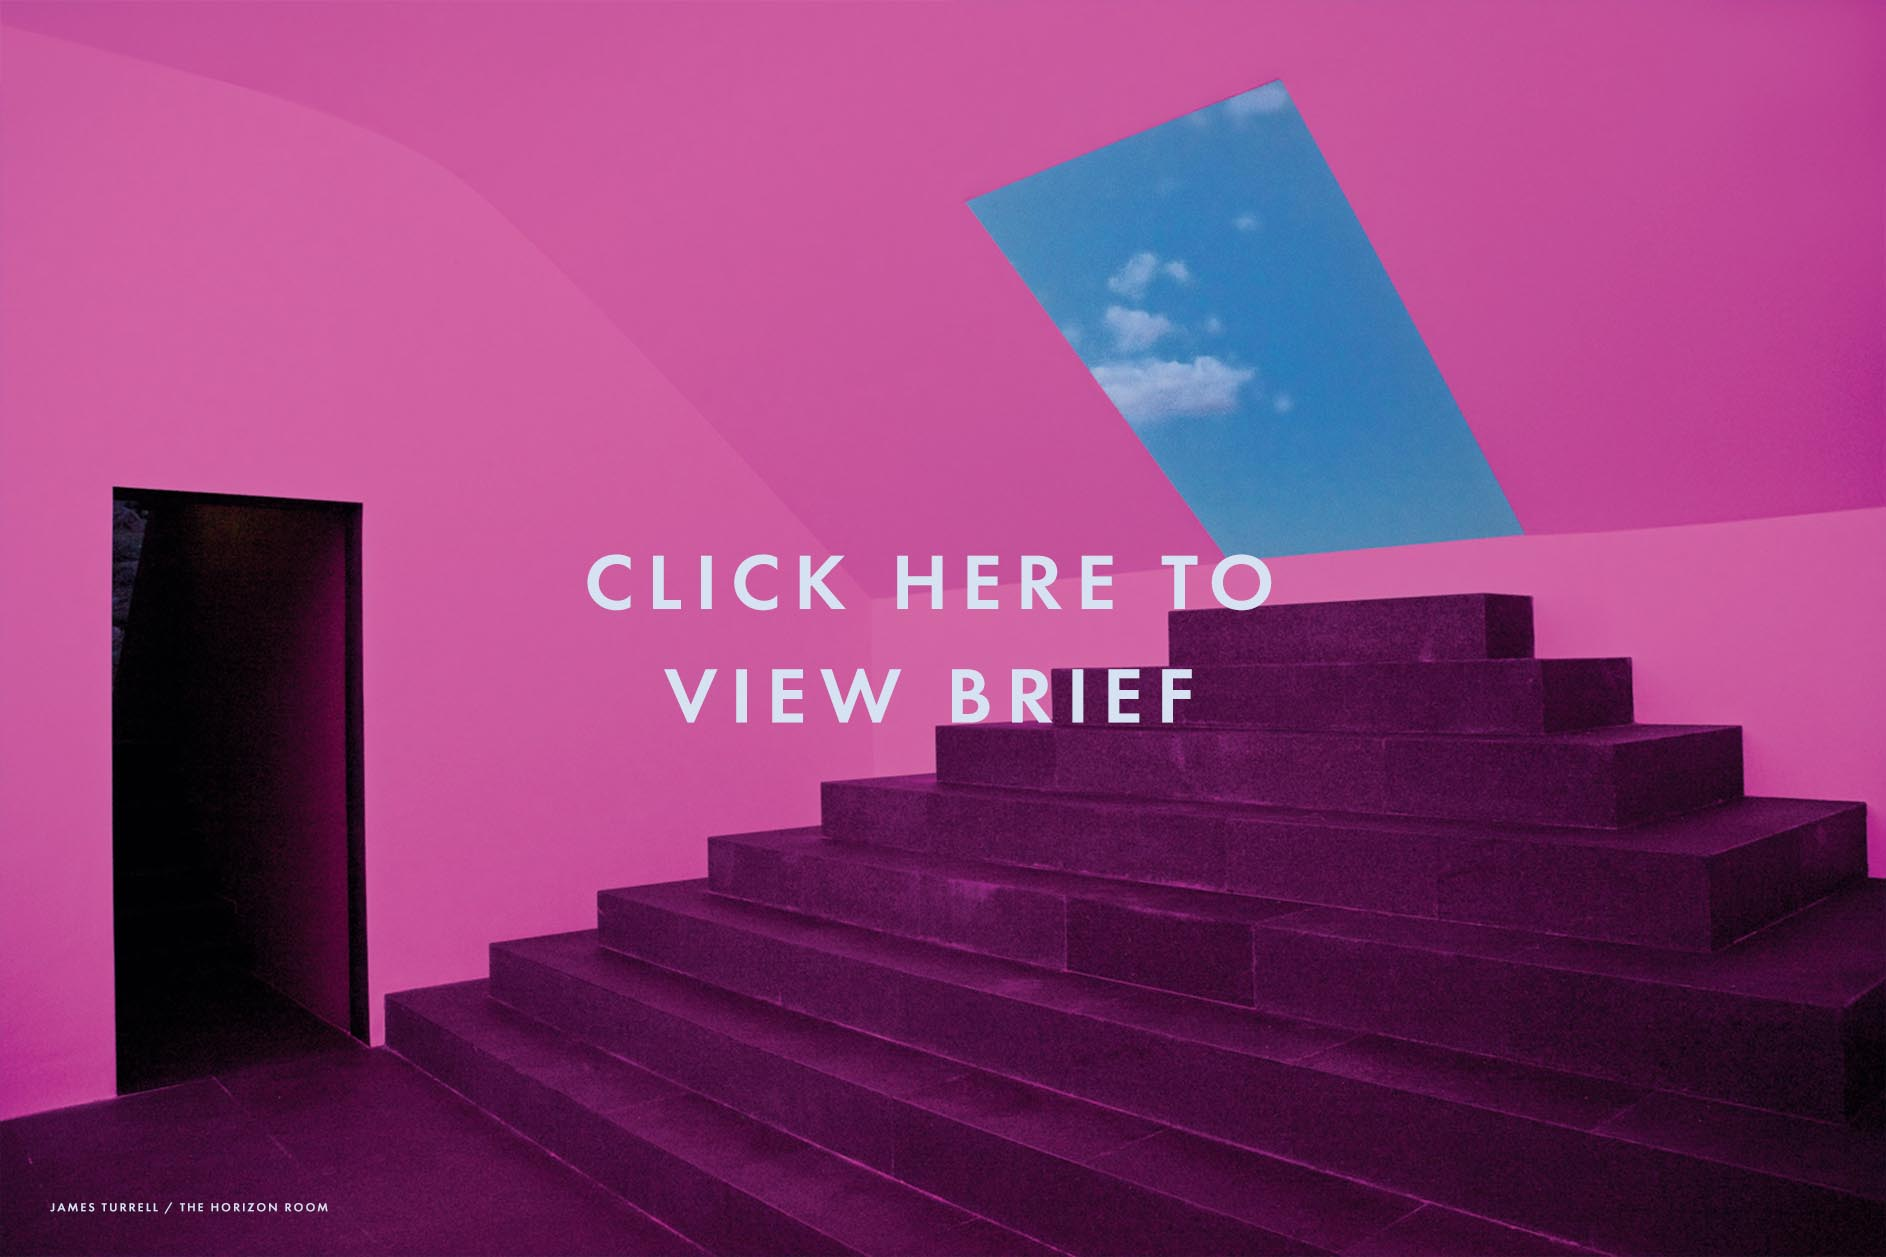 james-turrell-submission-casper-submit